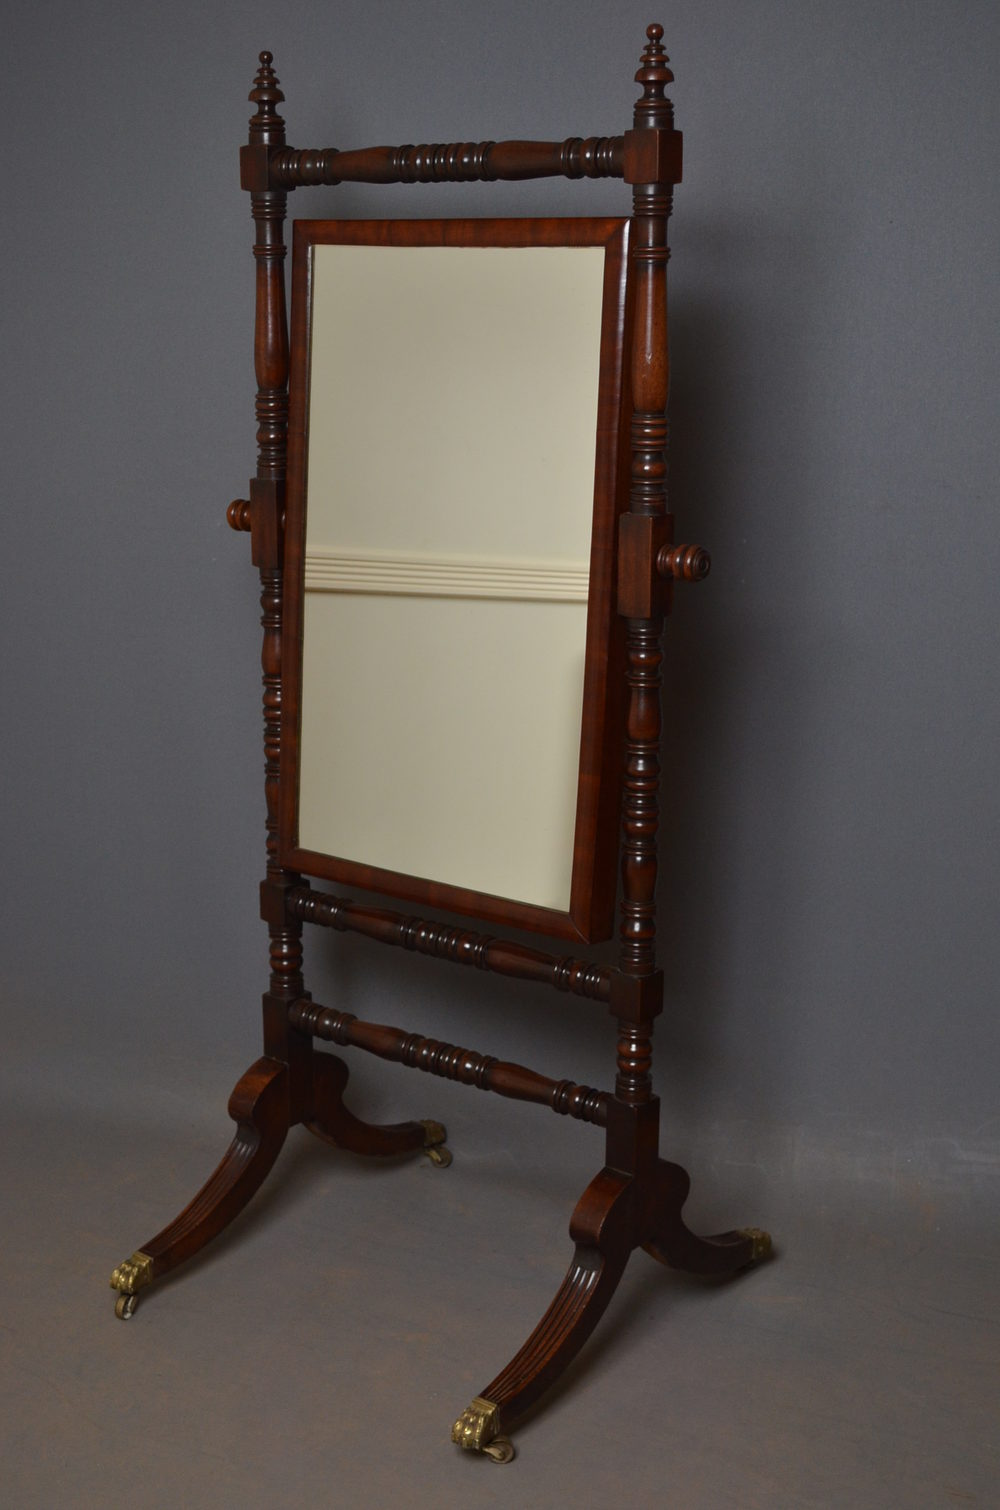 Antiques atlas regency cheval mirror mahogany cheval for Cheval mirror